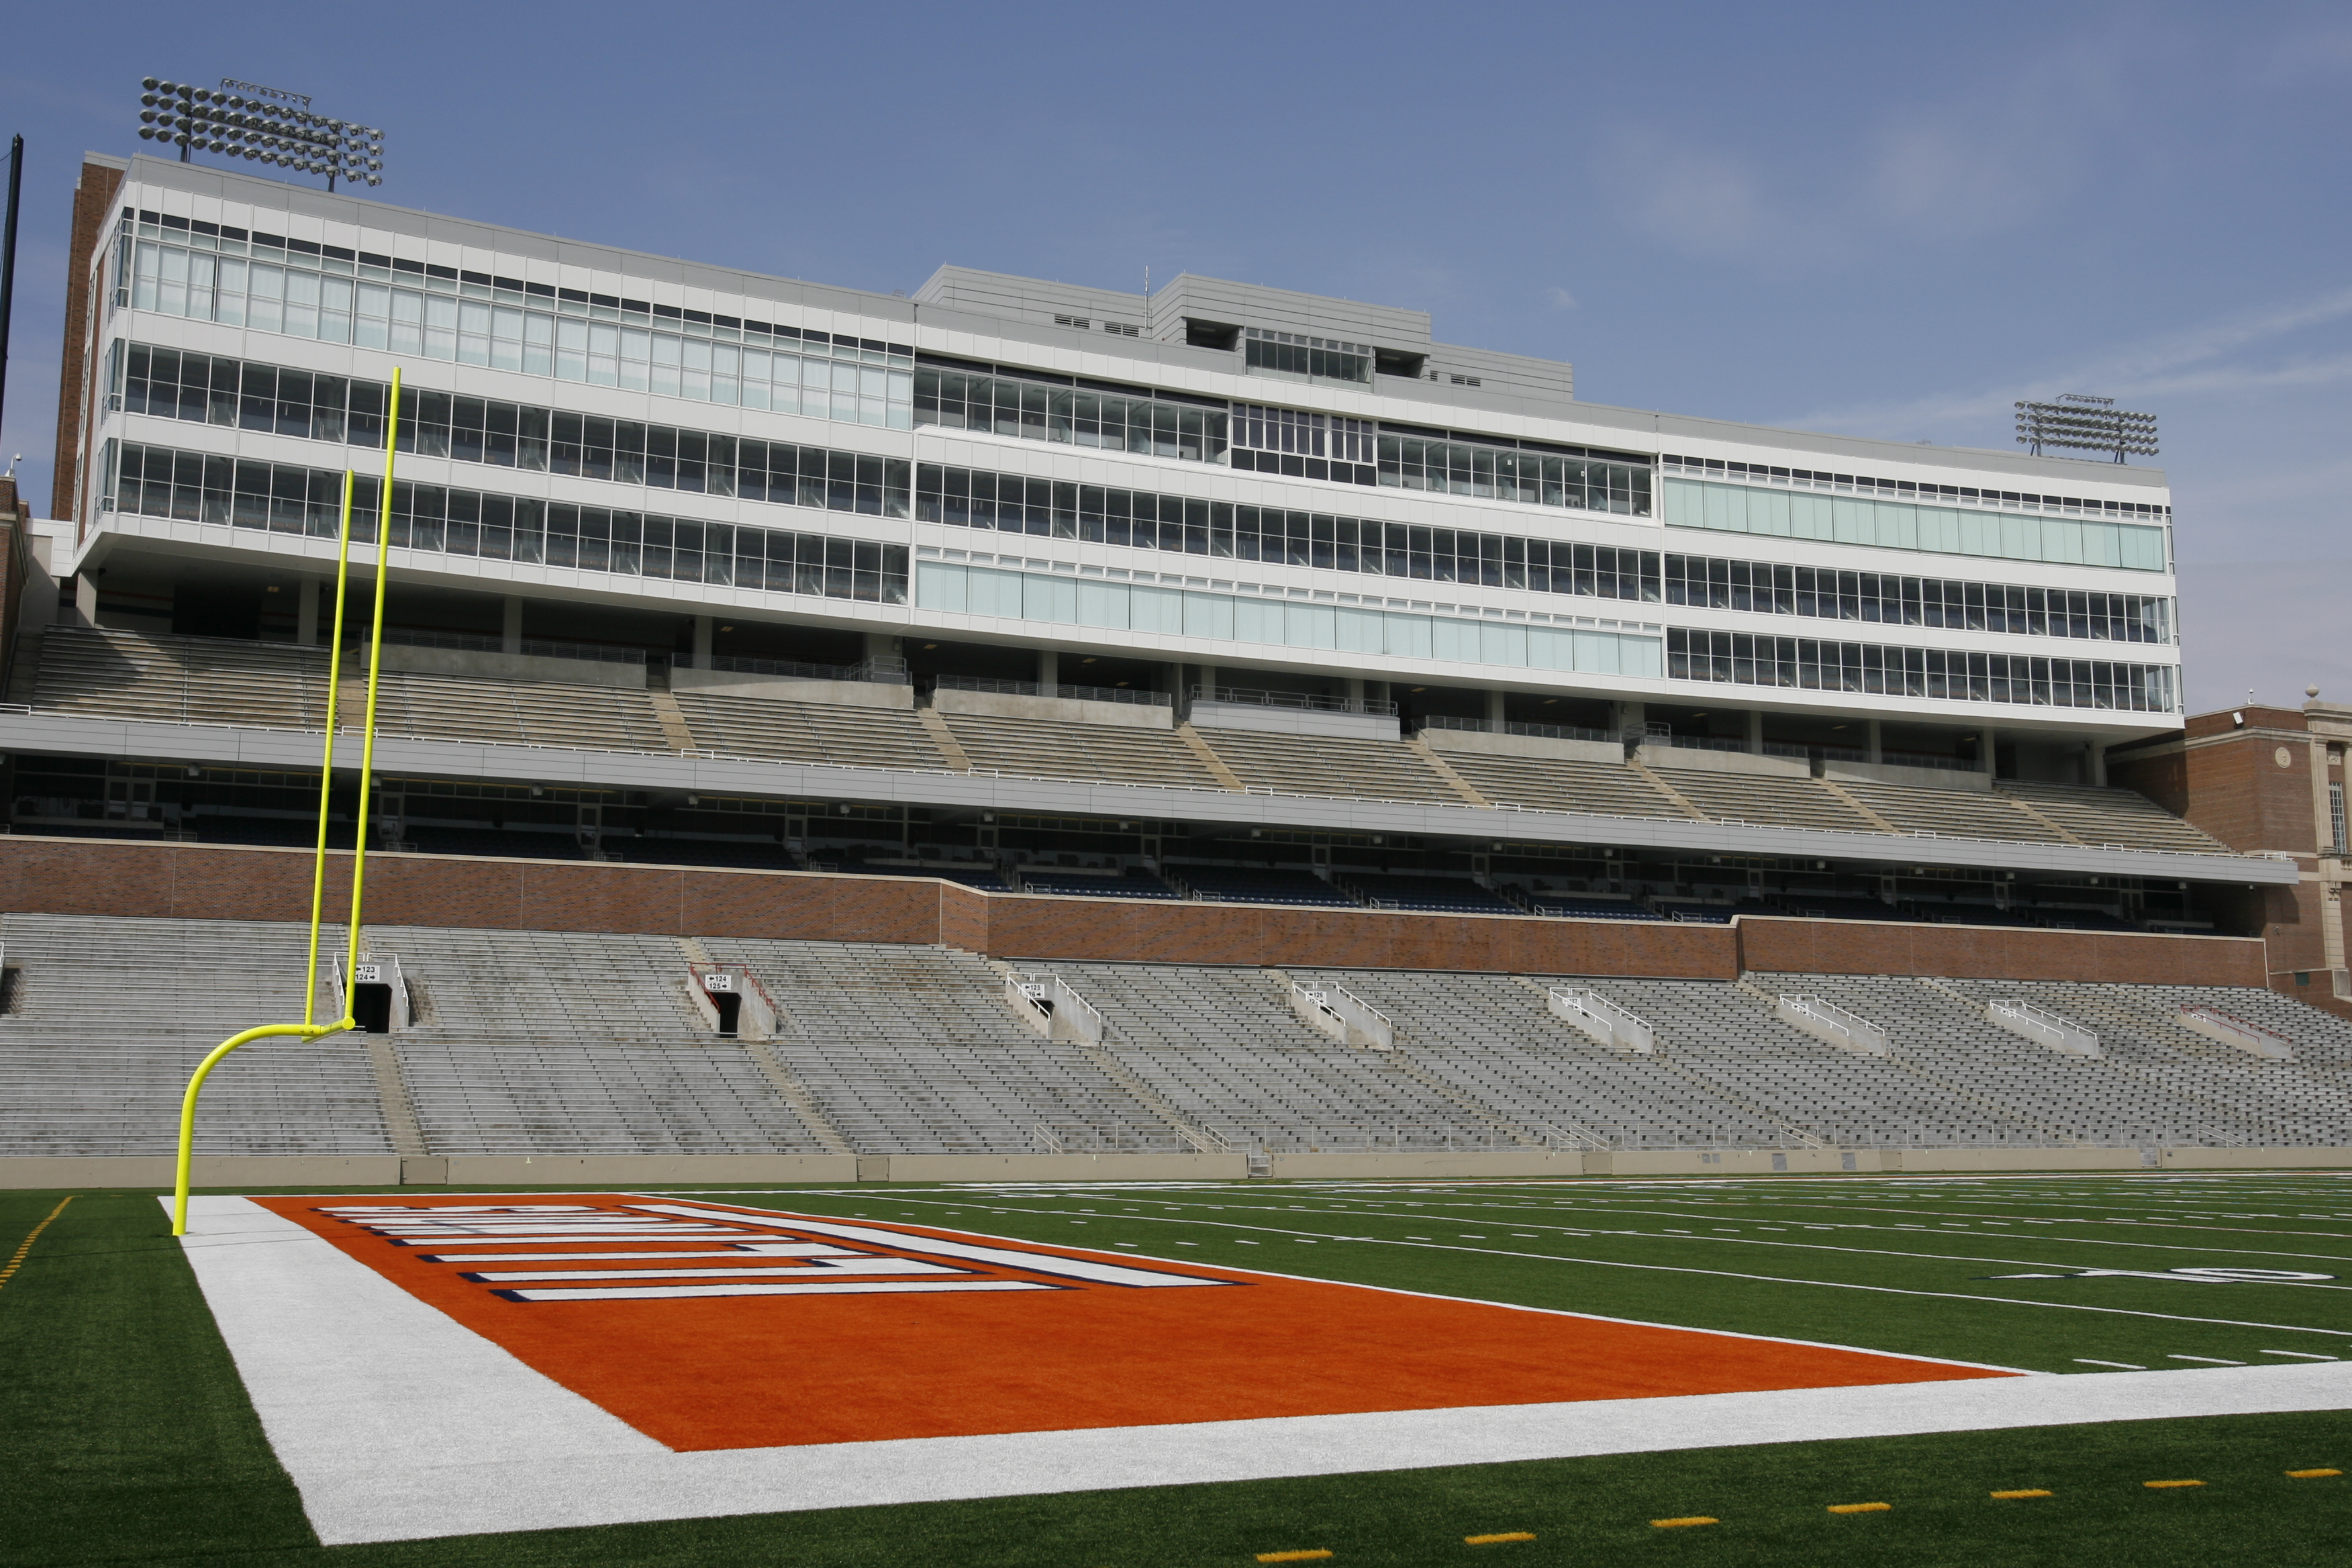 University of Illinois Memorial Stadium